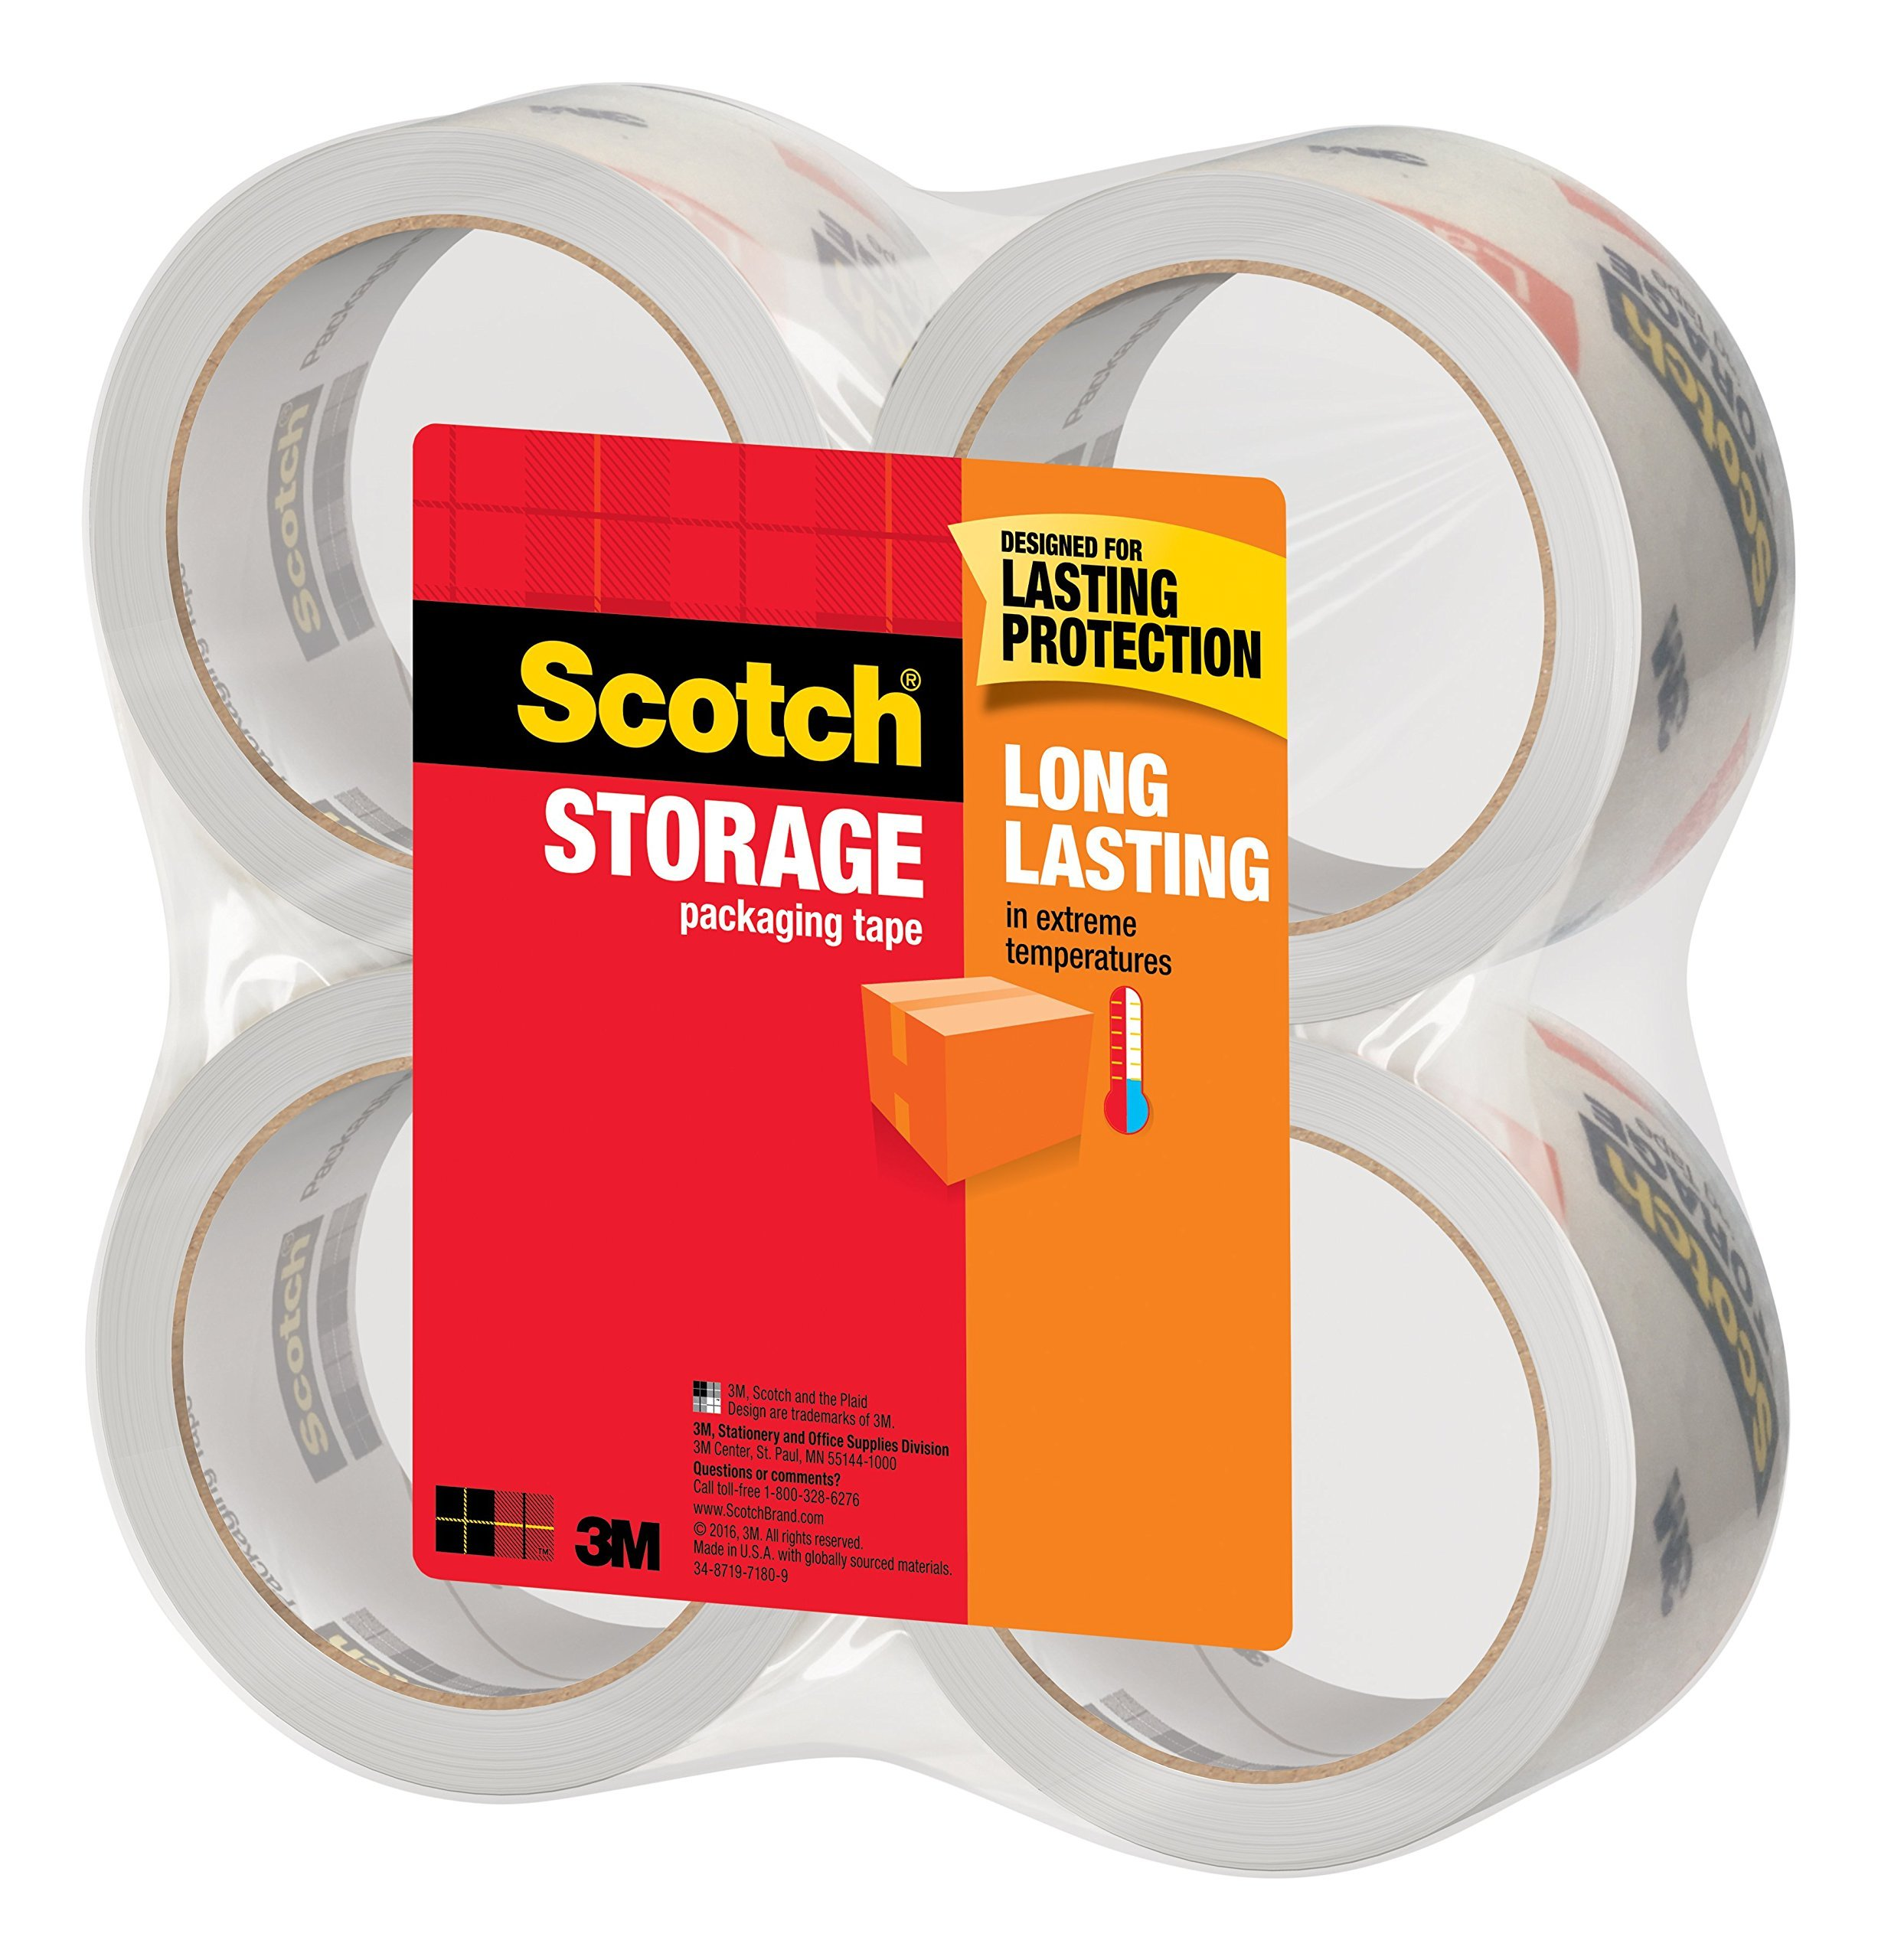 3650-6 6 Rolls New Long Lasting Storage Packaging Tape 1.88 Inches x 54.6 Yards